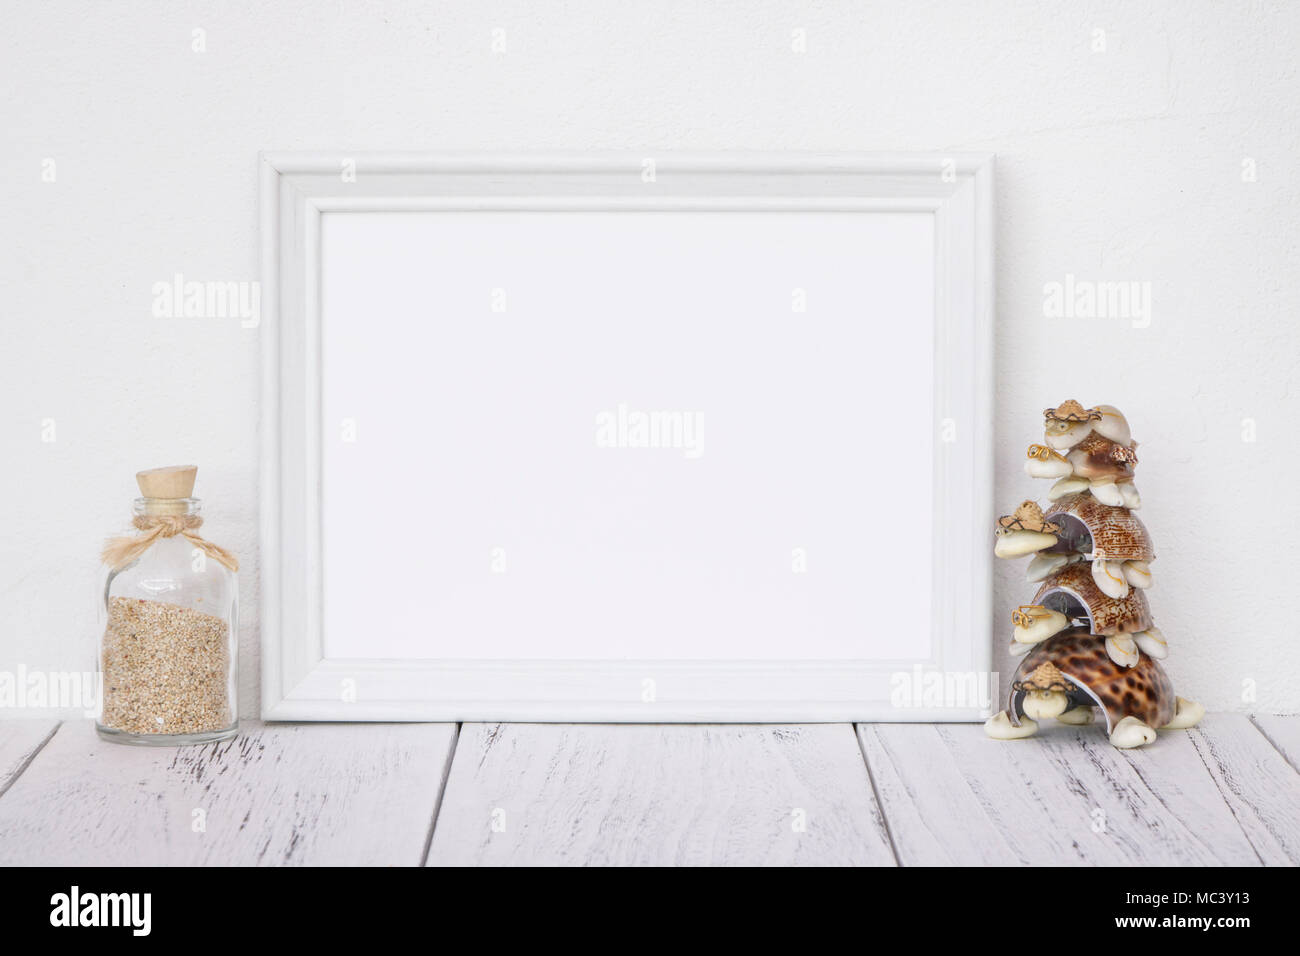 Stock photography white frame vintage painted wood table glass ...